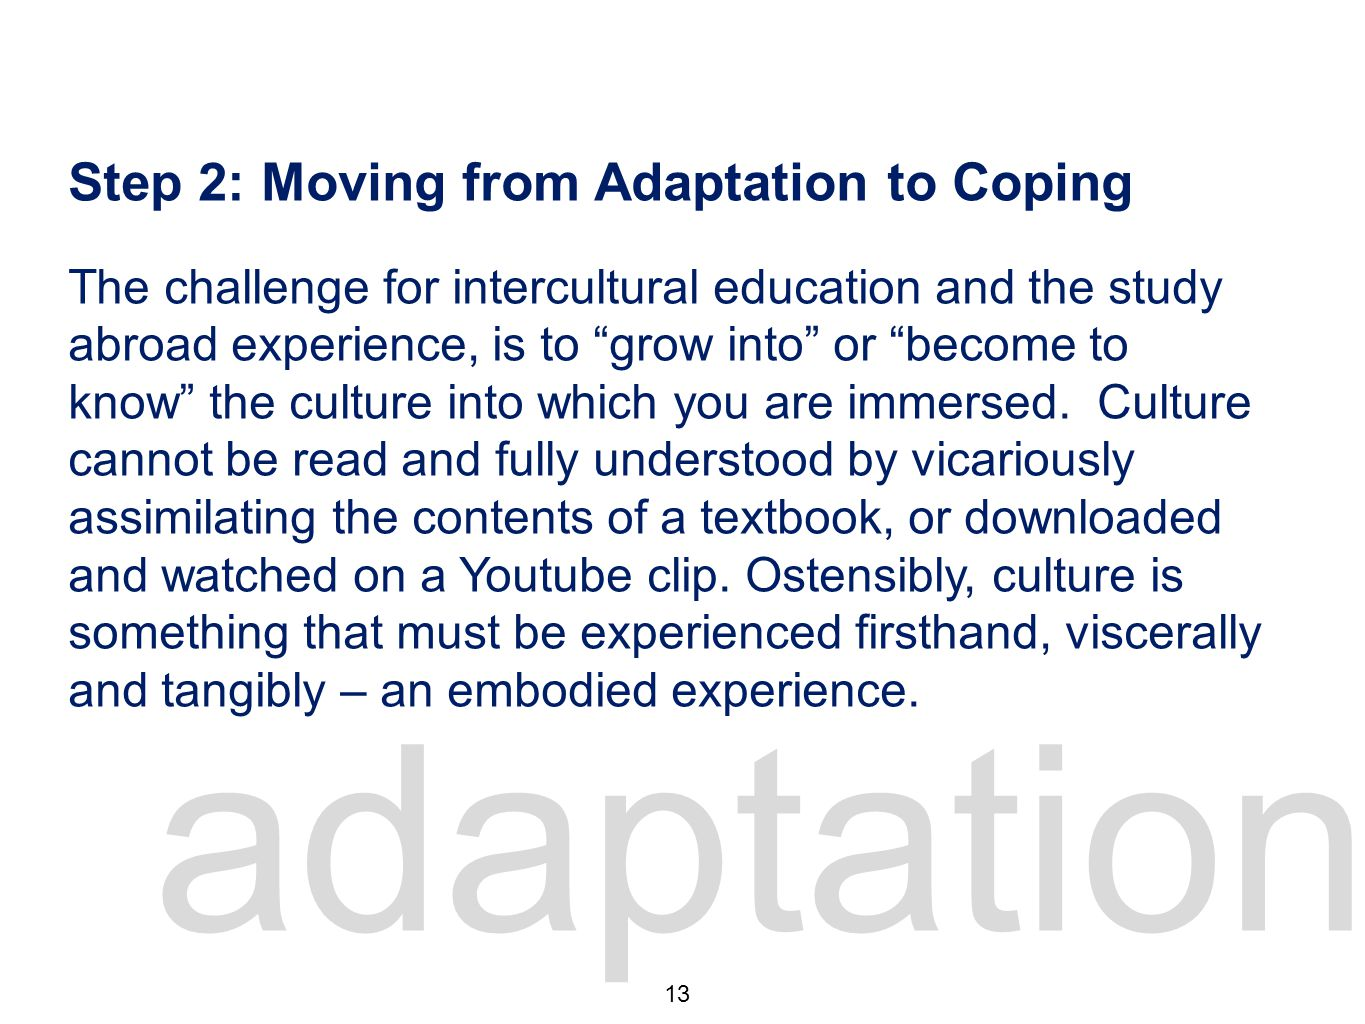 adaptation 2 Step 2: Moving from Adaptation to Coping The challenge for intercultural education and the study abroad experience, is to grow into or become to know the culture into which you are immersed.